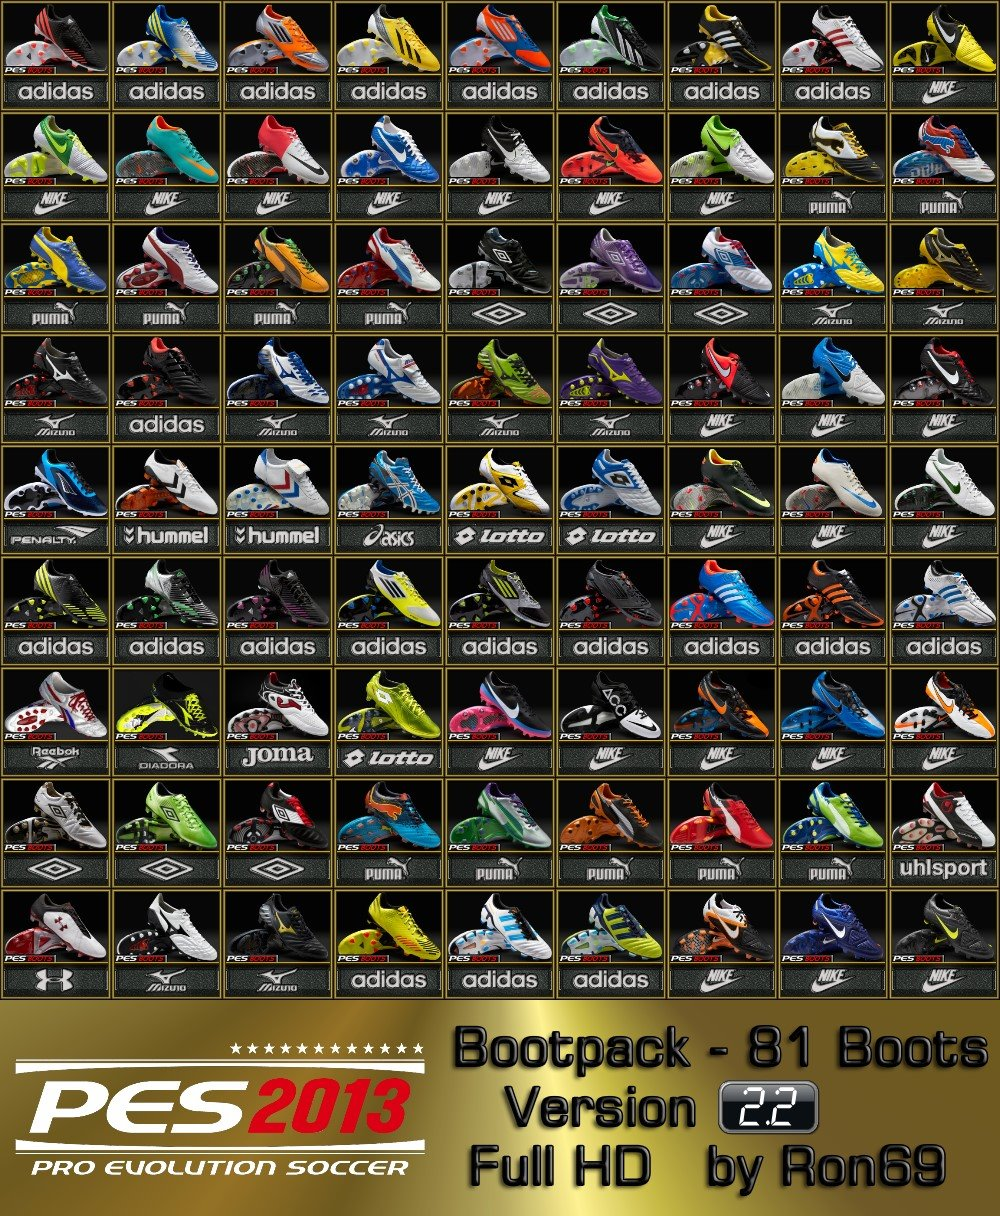 PES 2013 HD Bootpack 2.2 (81 Boots) Preview: